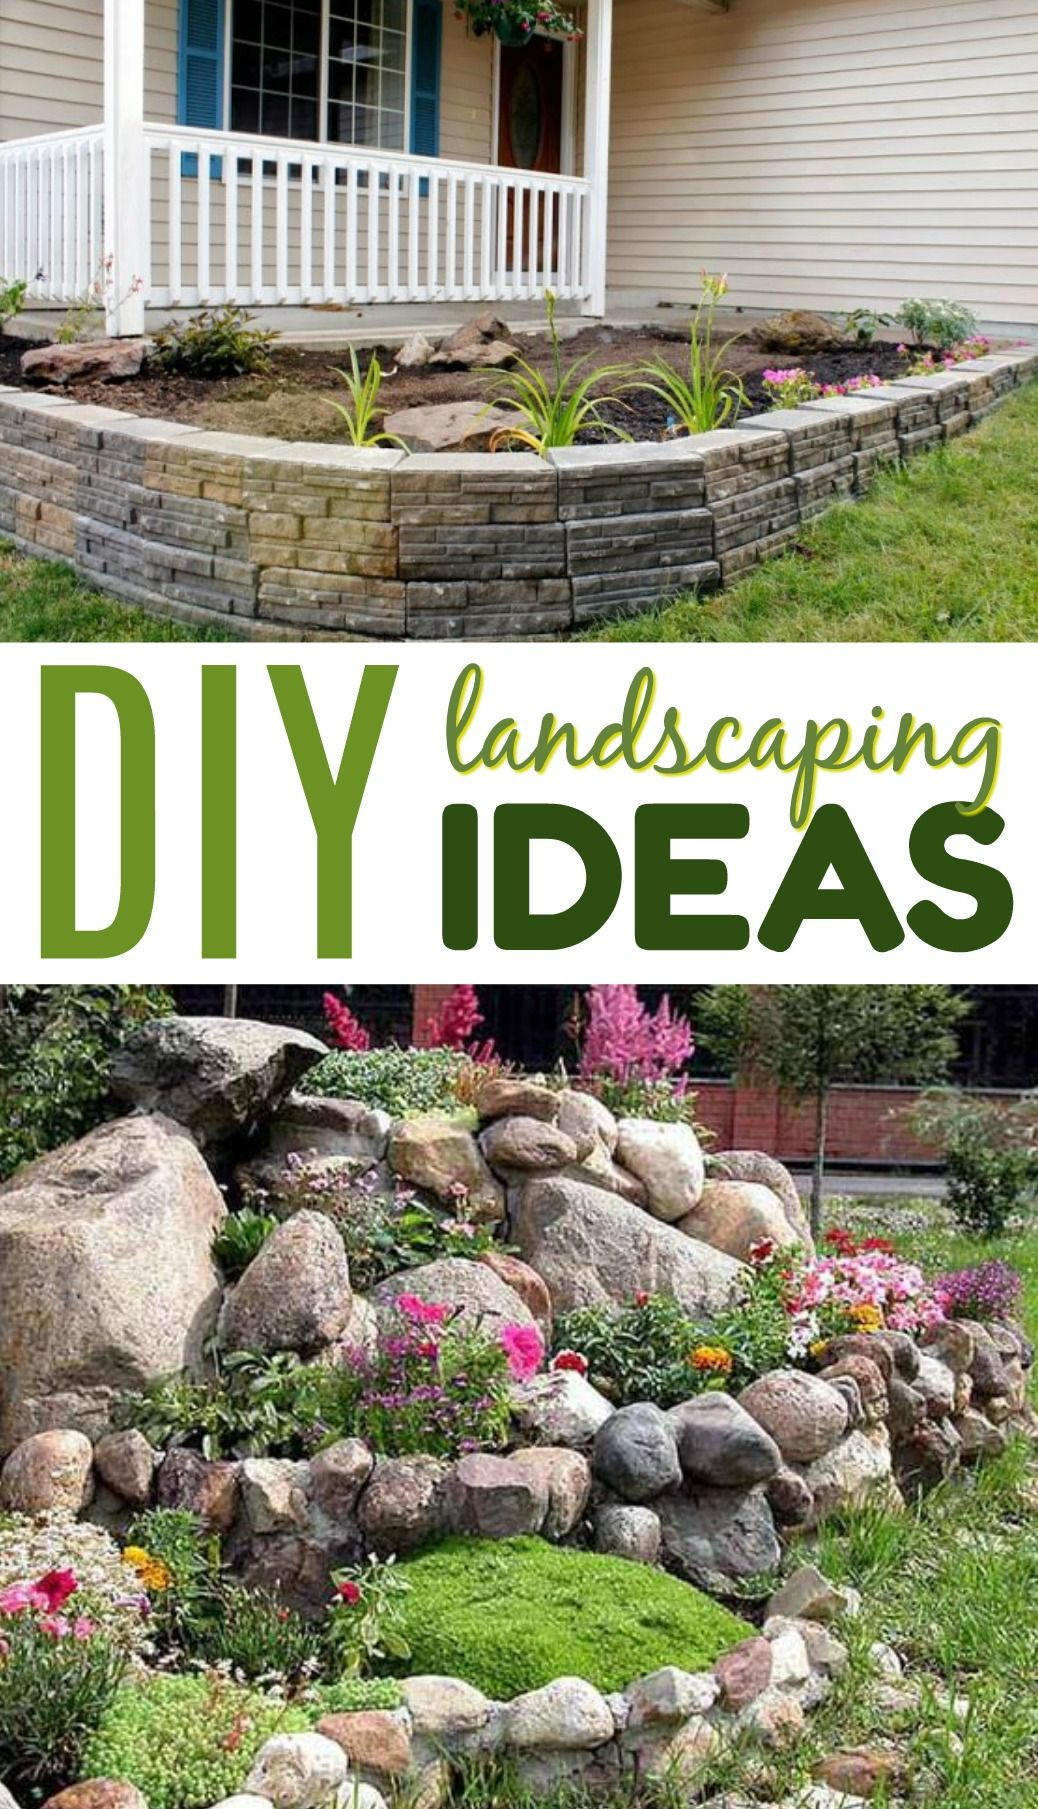 DIY Landscaping Ideas | Front yard landscaping ...